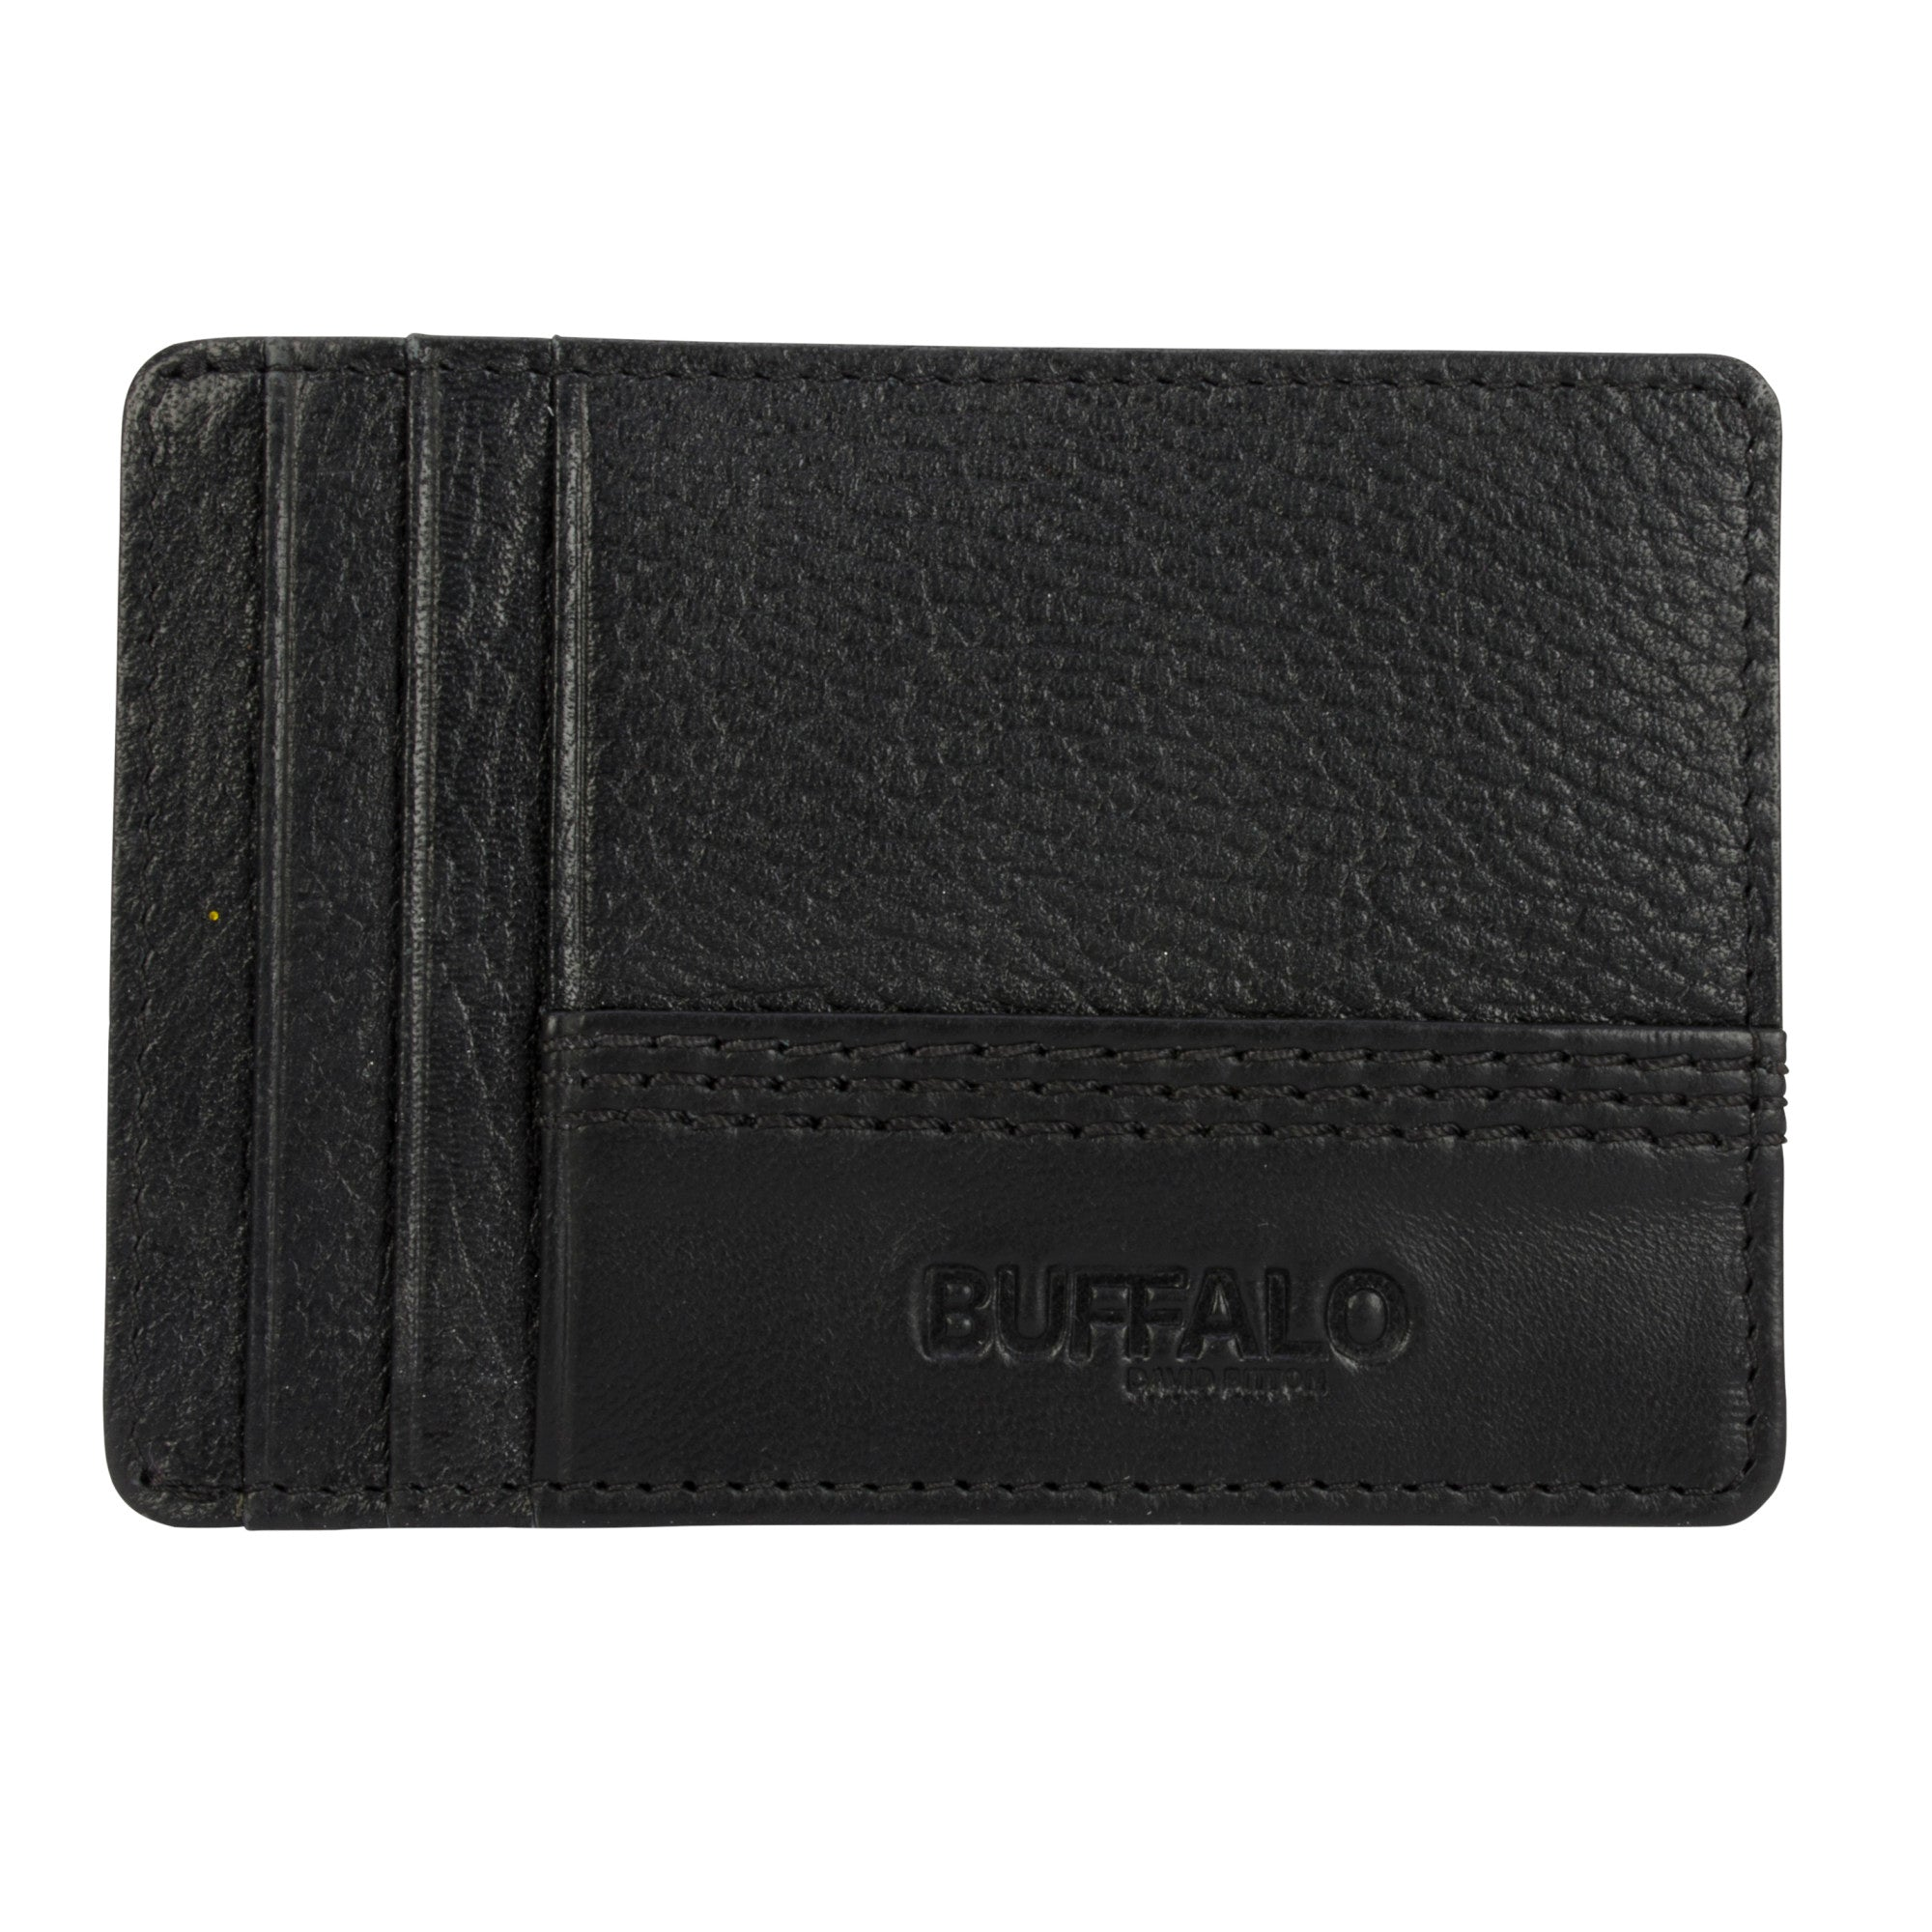 Buffalo David Bitton Harrison Money Clip Card Case - BUF199625002